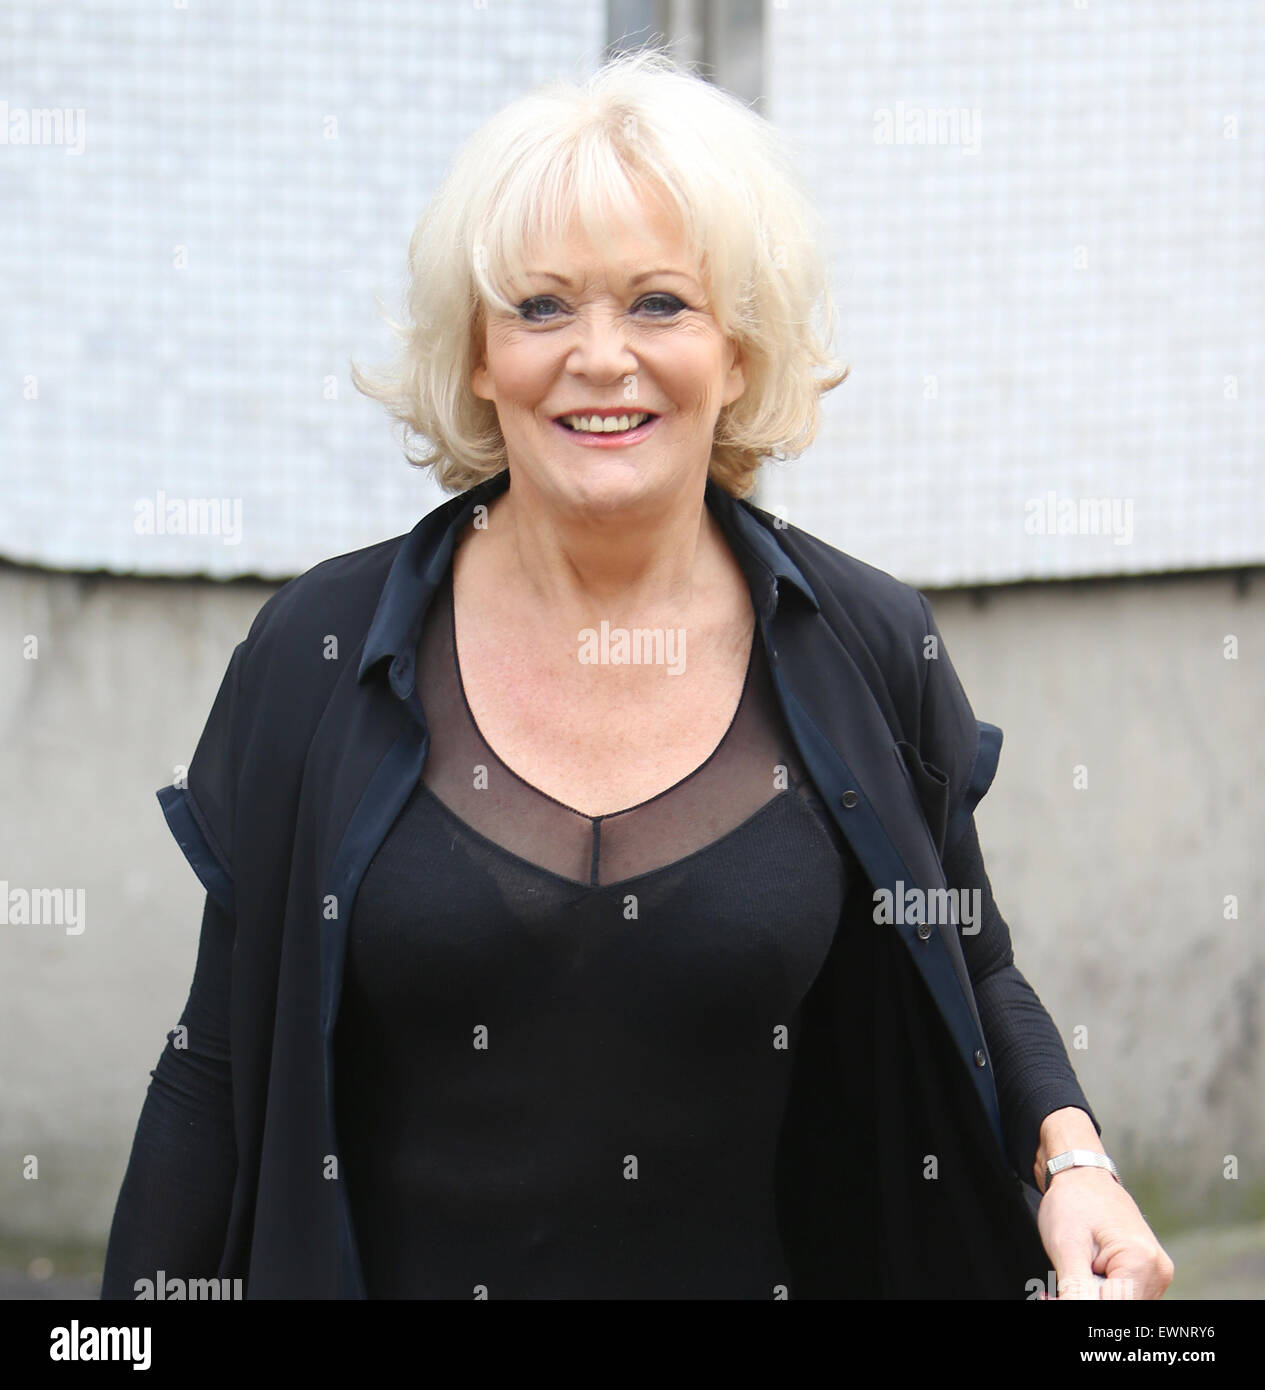 Sherrie Hewson nude (41 photos), Ass, Sideboobs, Boobs, bra 2017